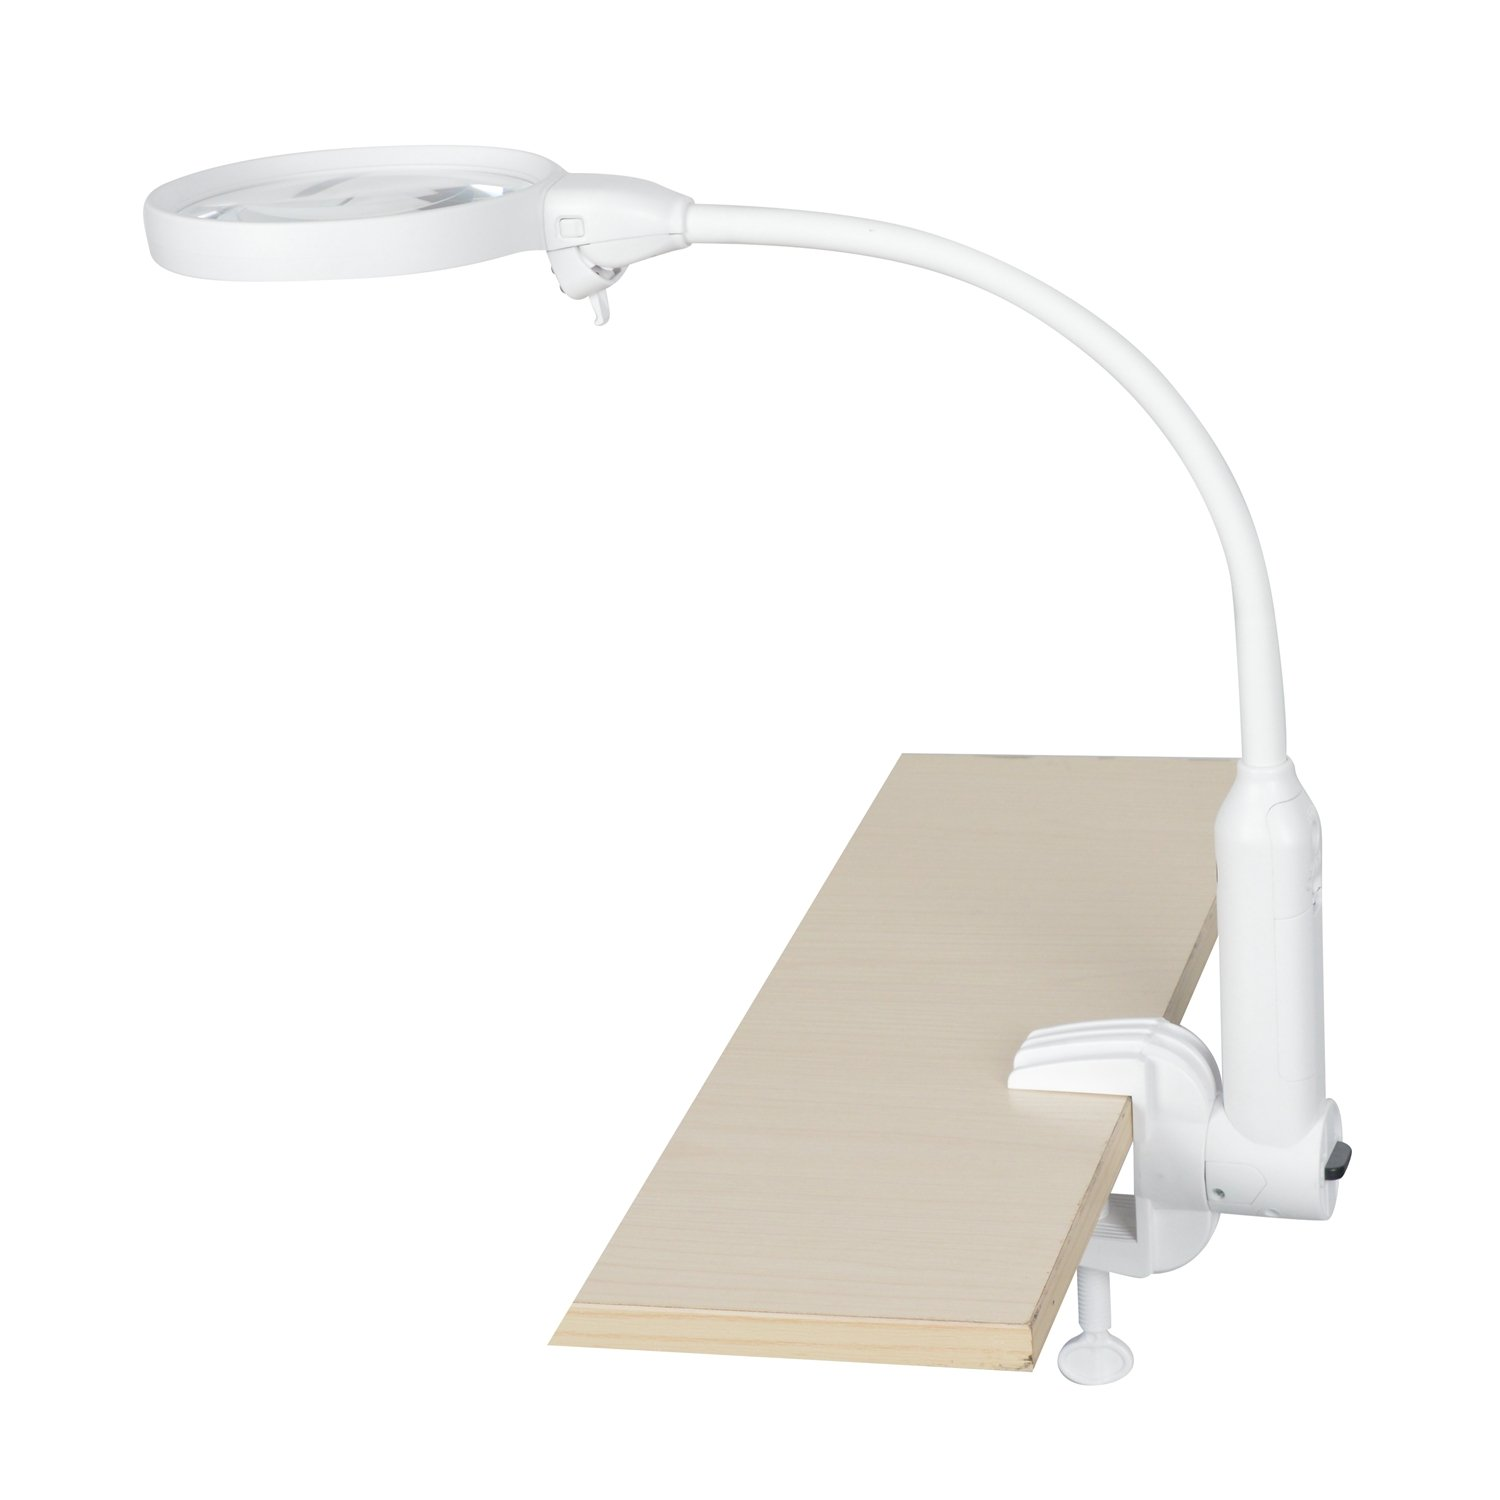 Yoctosun 2x 5x Led Magnifying Lamp 2 In 1 Clip On With Clamp Bracket Multifunctional Desktop Magnifier Circuit Glass 6 Bright Lights And Flexible Gooseneck